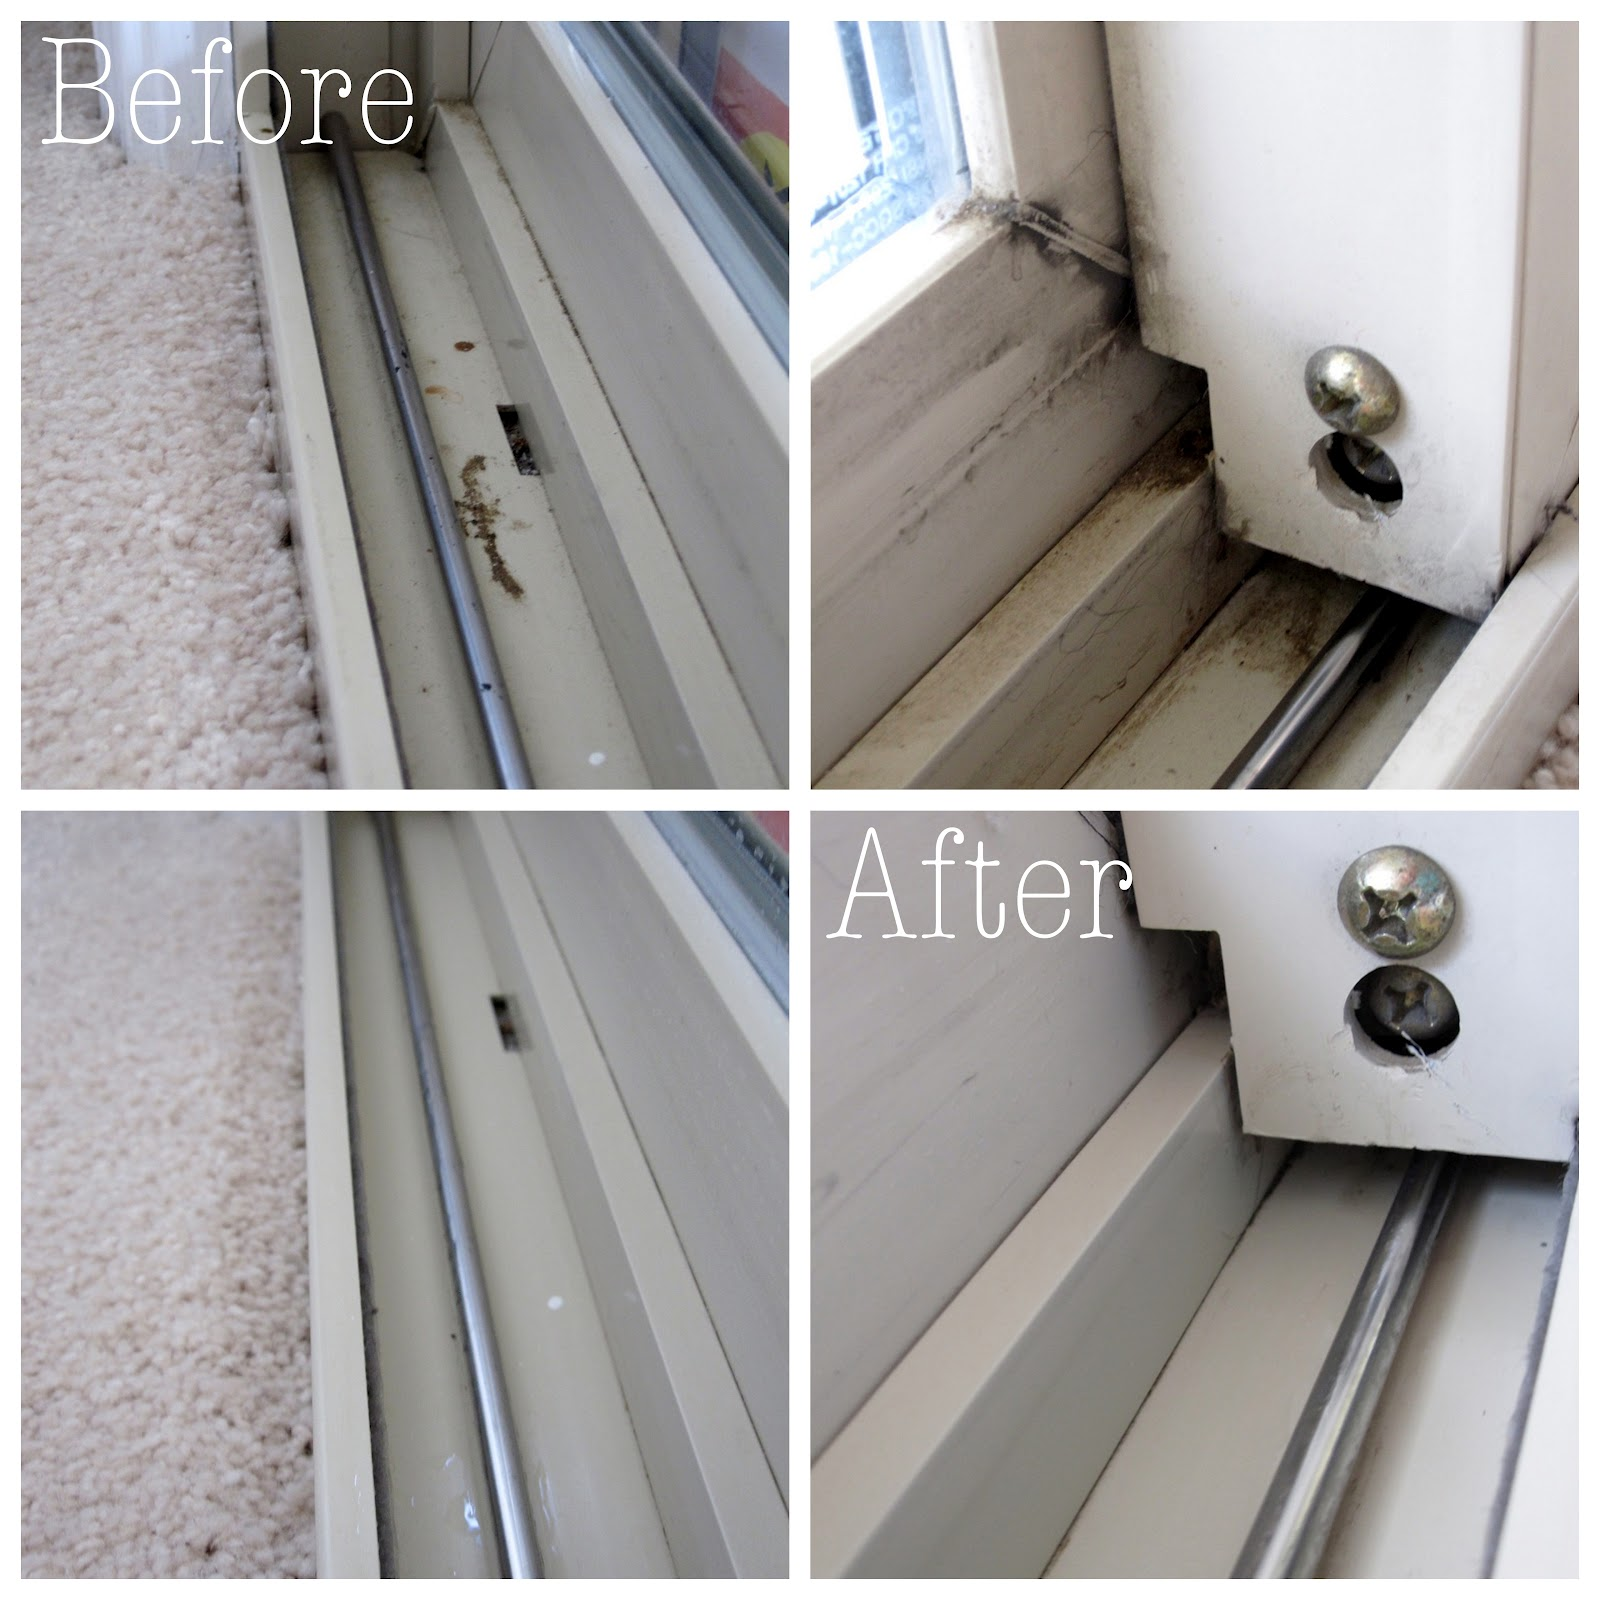 The easiest way to clean window tracks